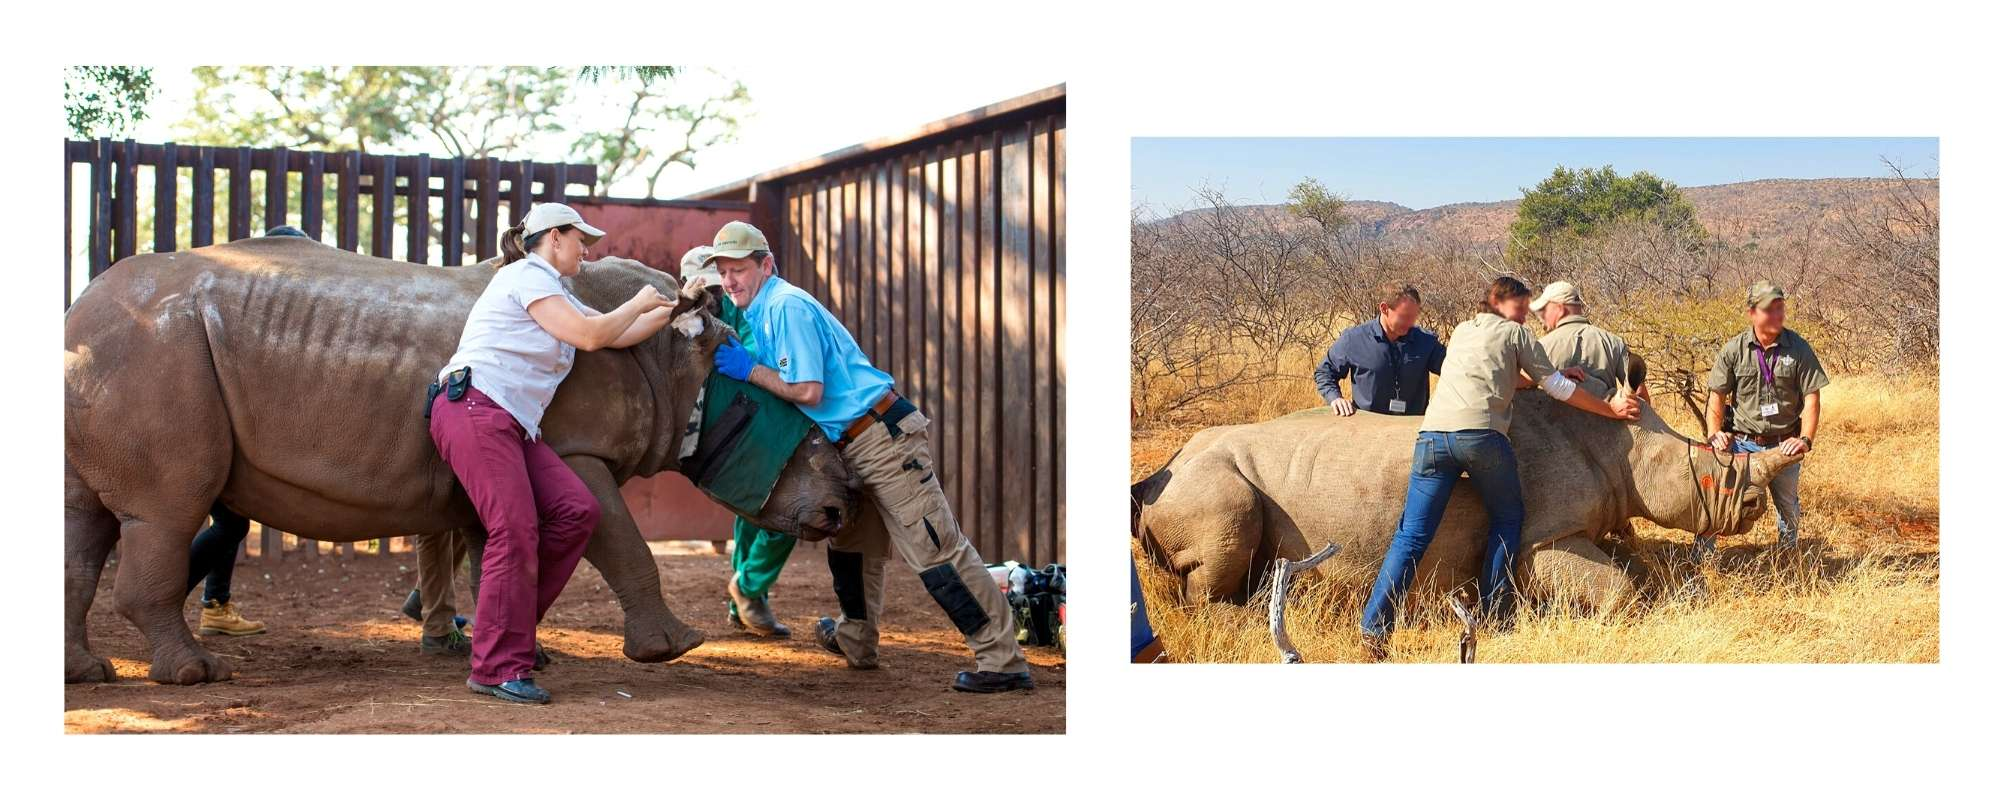 Saving The Survivors working on poached rhinos in South Africa - Wild In Africa